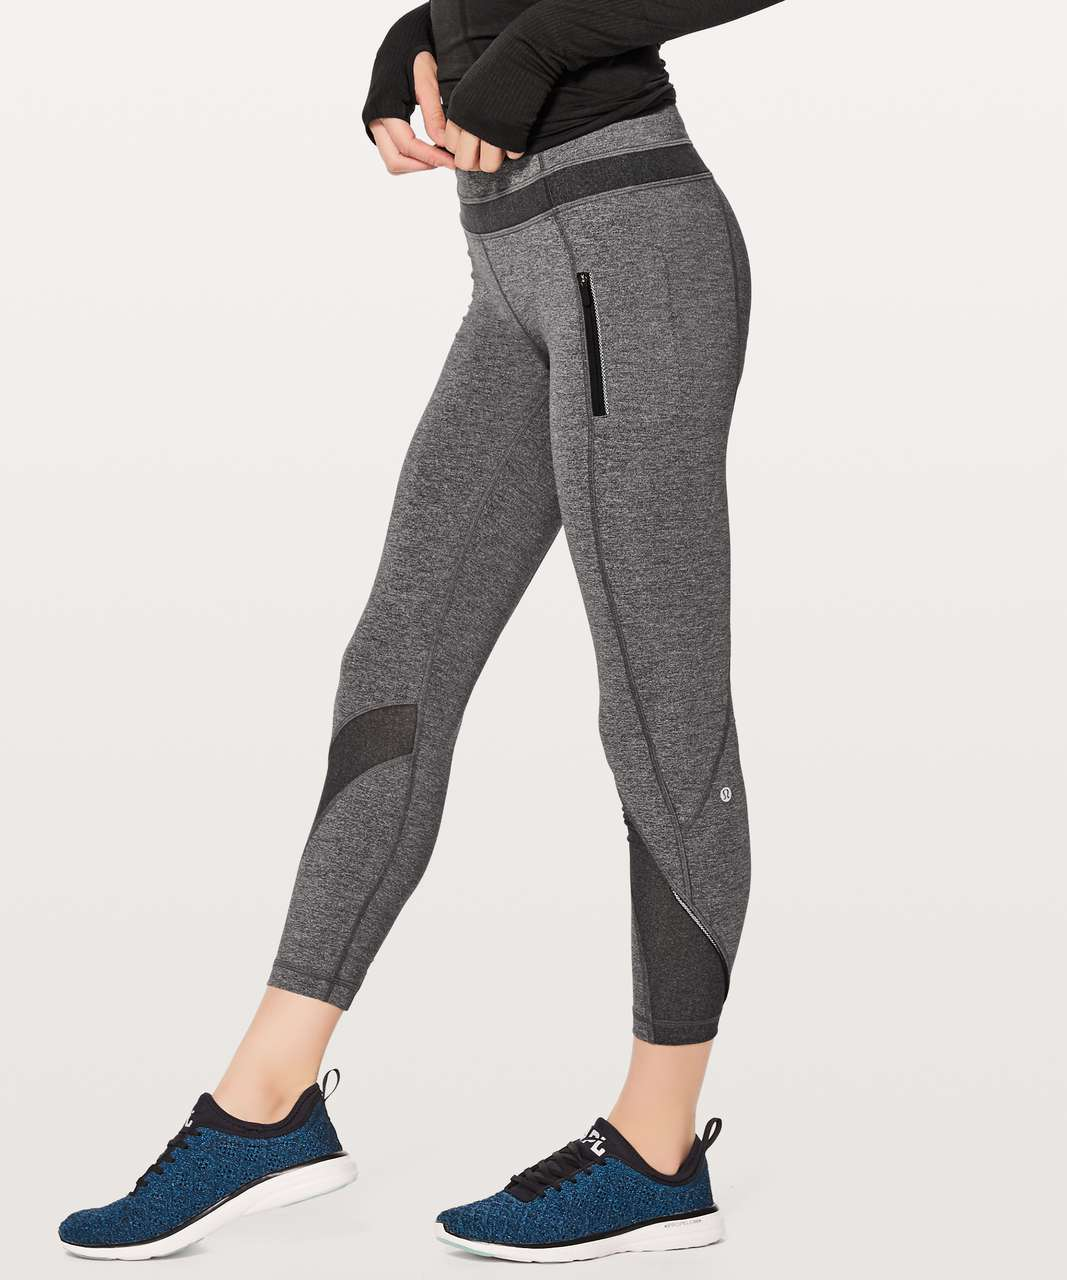 614375f5f1 Lululemon Inspire Tight II - Heathered Black / Black - lulu fanatics